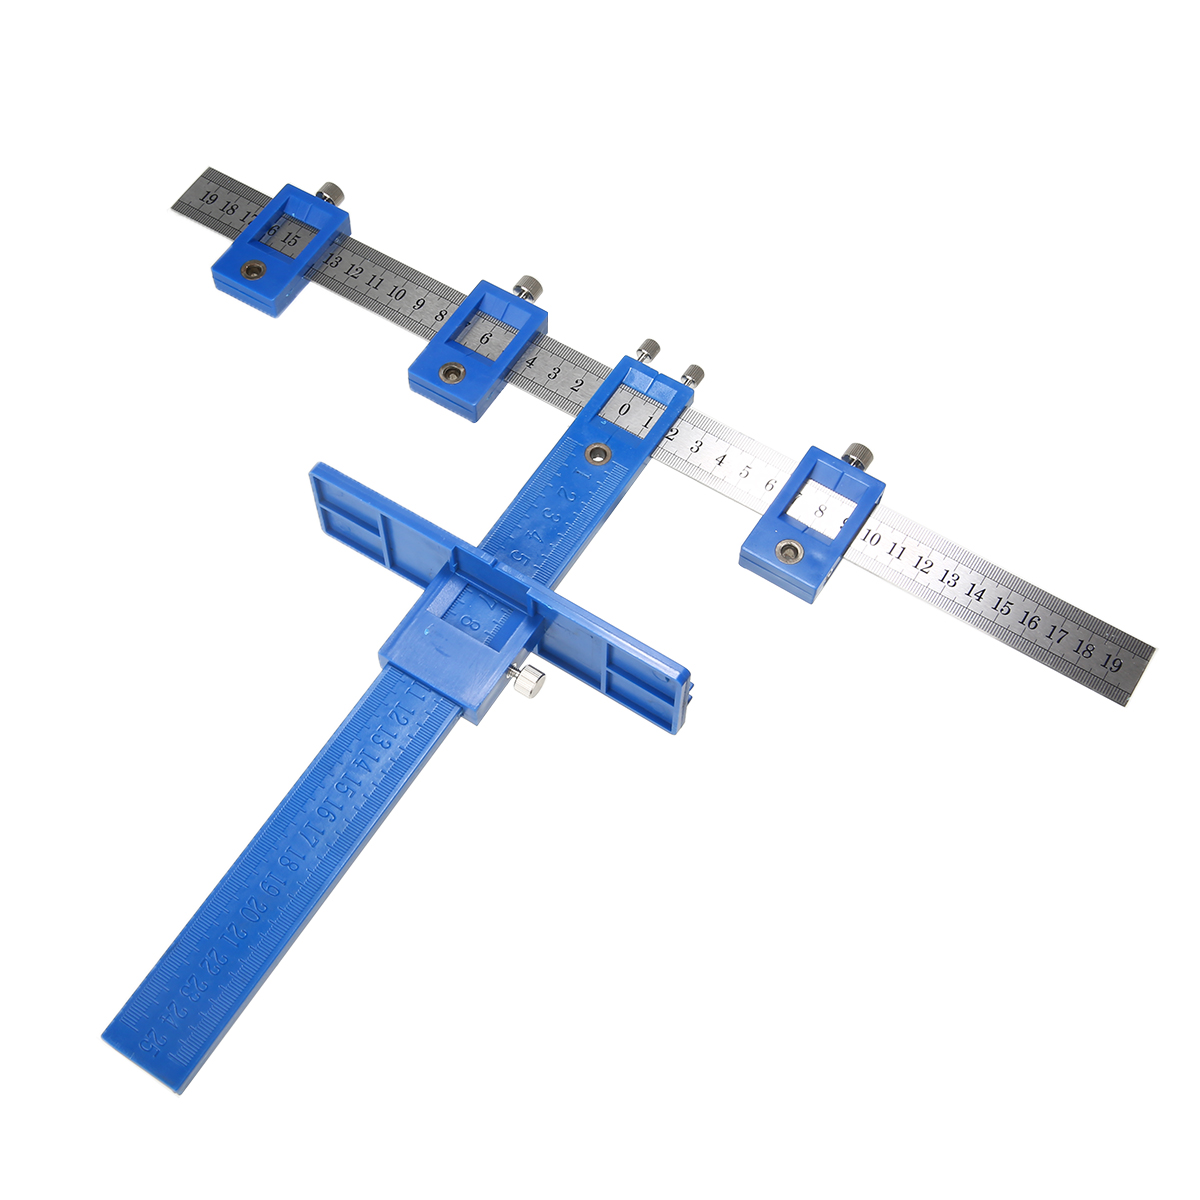 Punch Locator Jig Tool Detachable Hole Punching Fixture Ruler Drill Guide Sleeve For Drawer Dowelling Woodworking Supplies